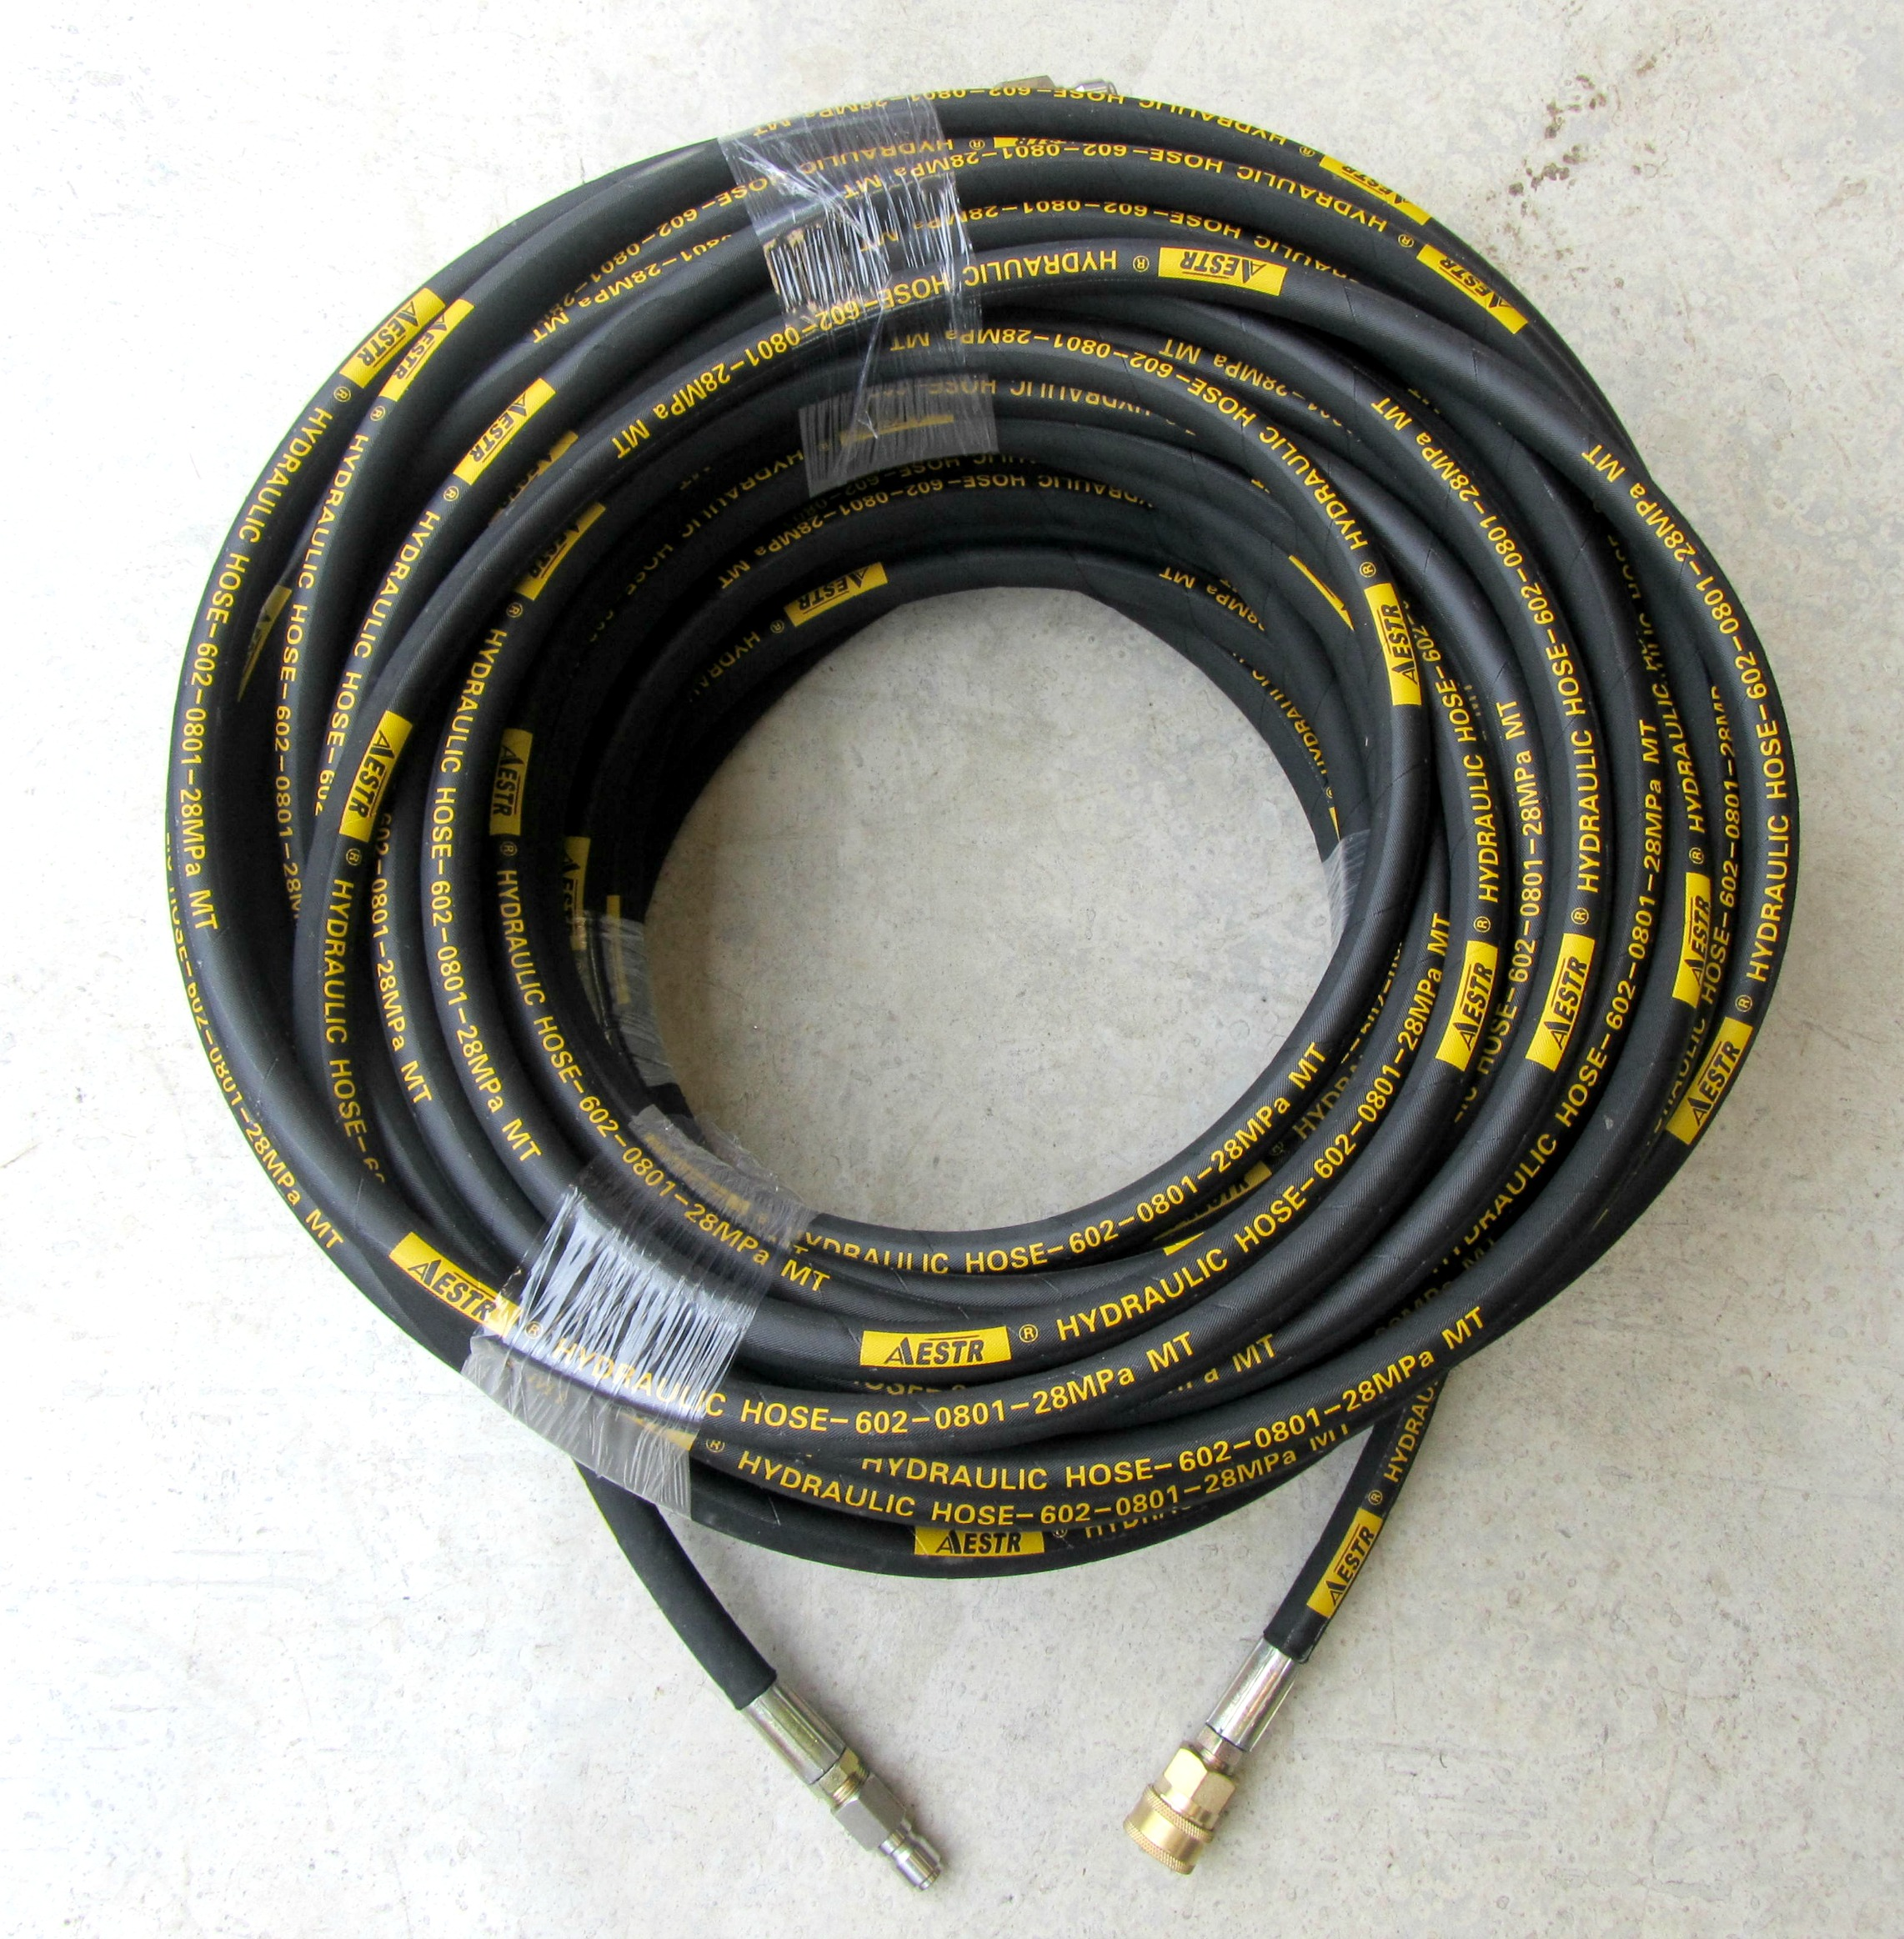 50 metre aestr single steel braided high pressure hose with quick connection fittings pressure. Black Bedroom Furniture Sets. Home Design Ideas